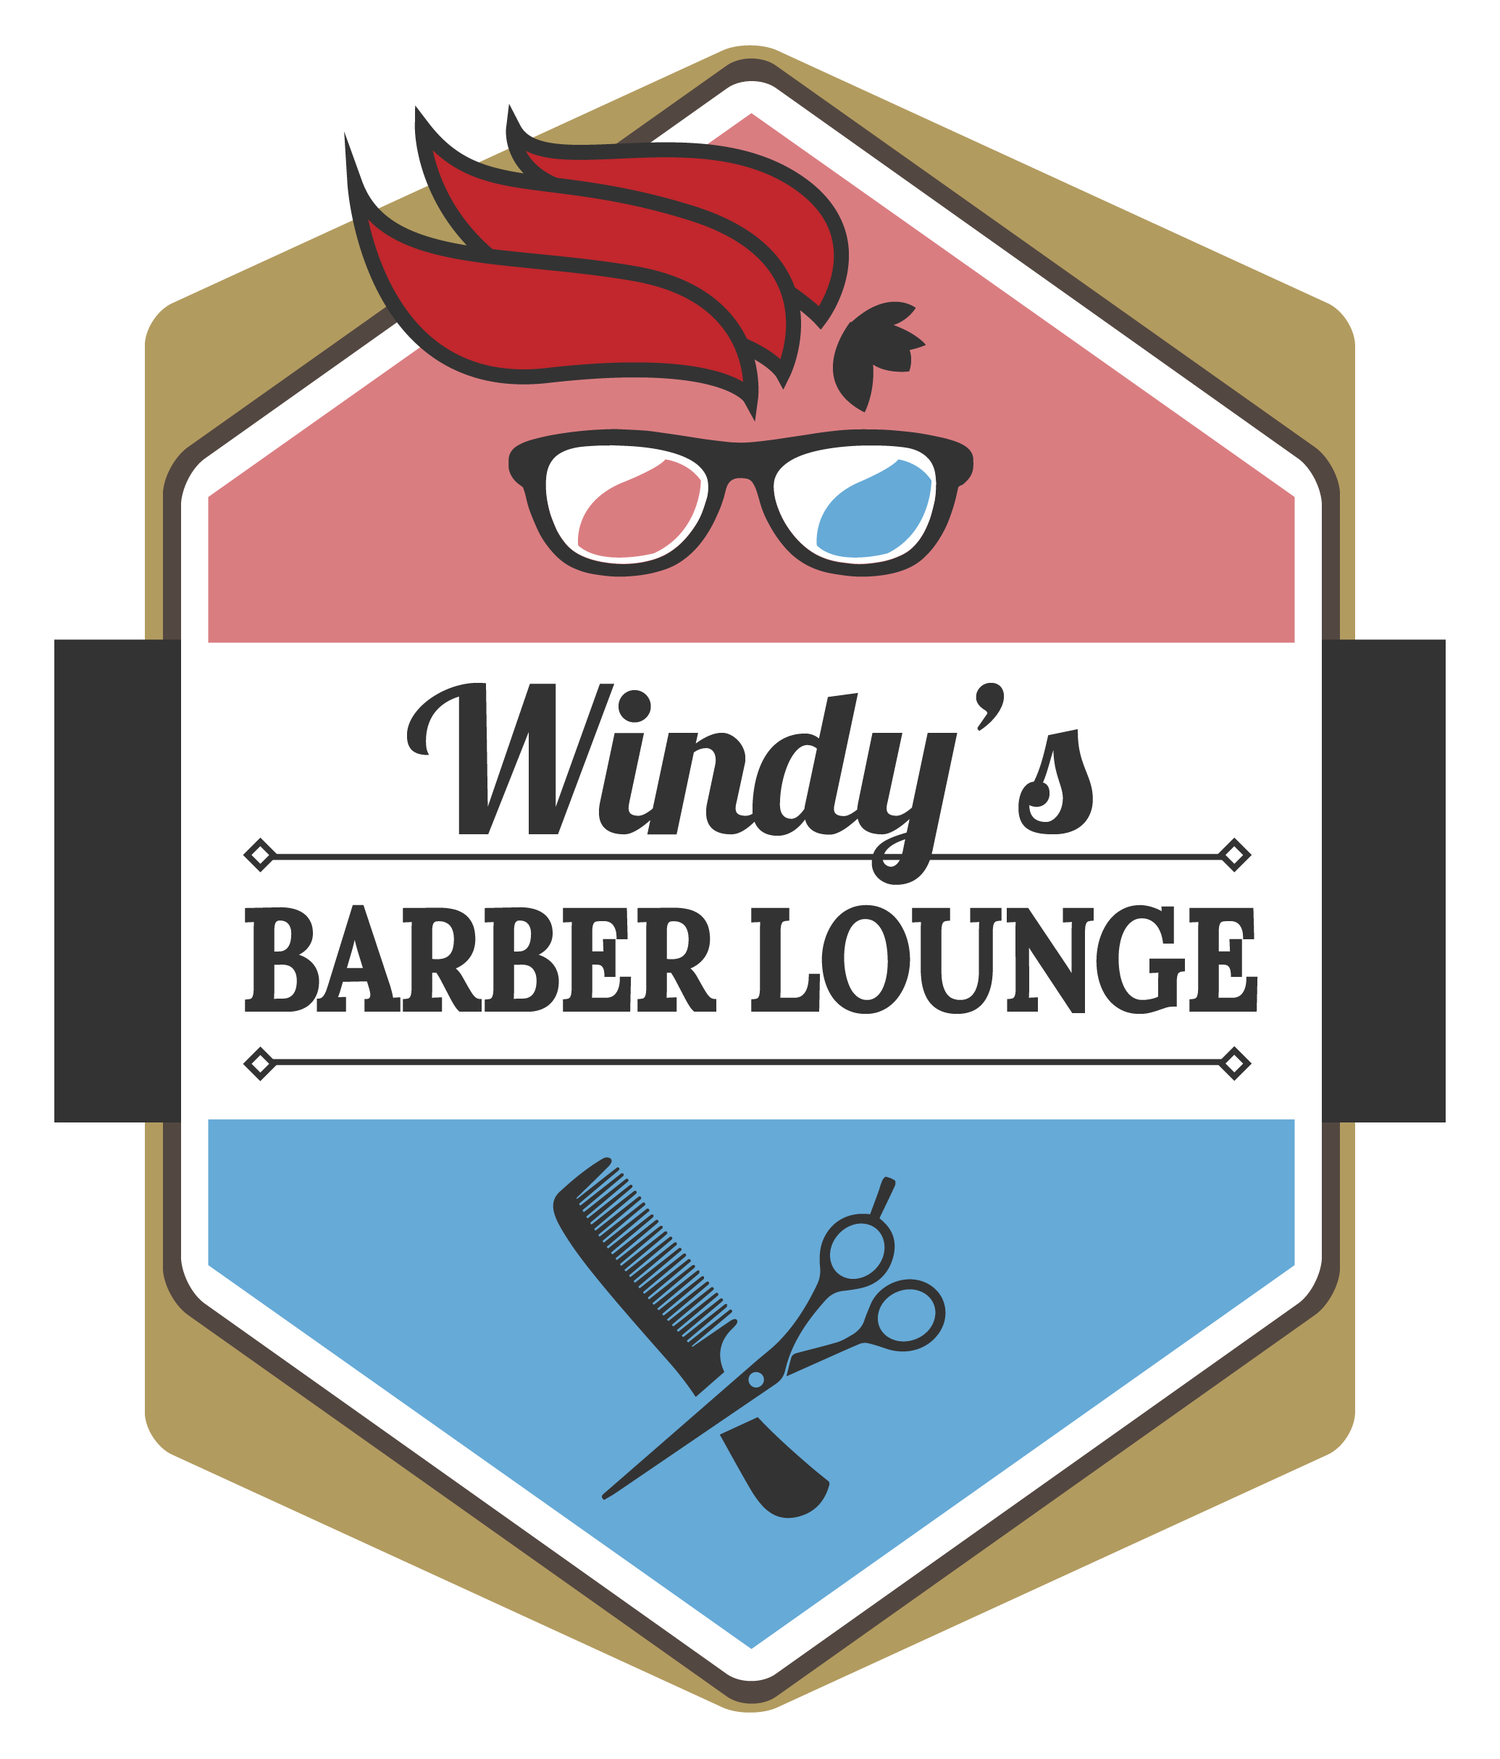 Windy's Barber Lounge